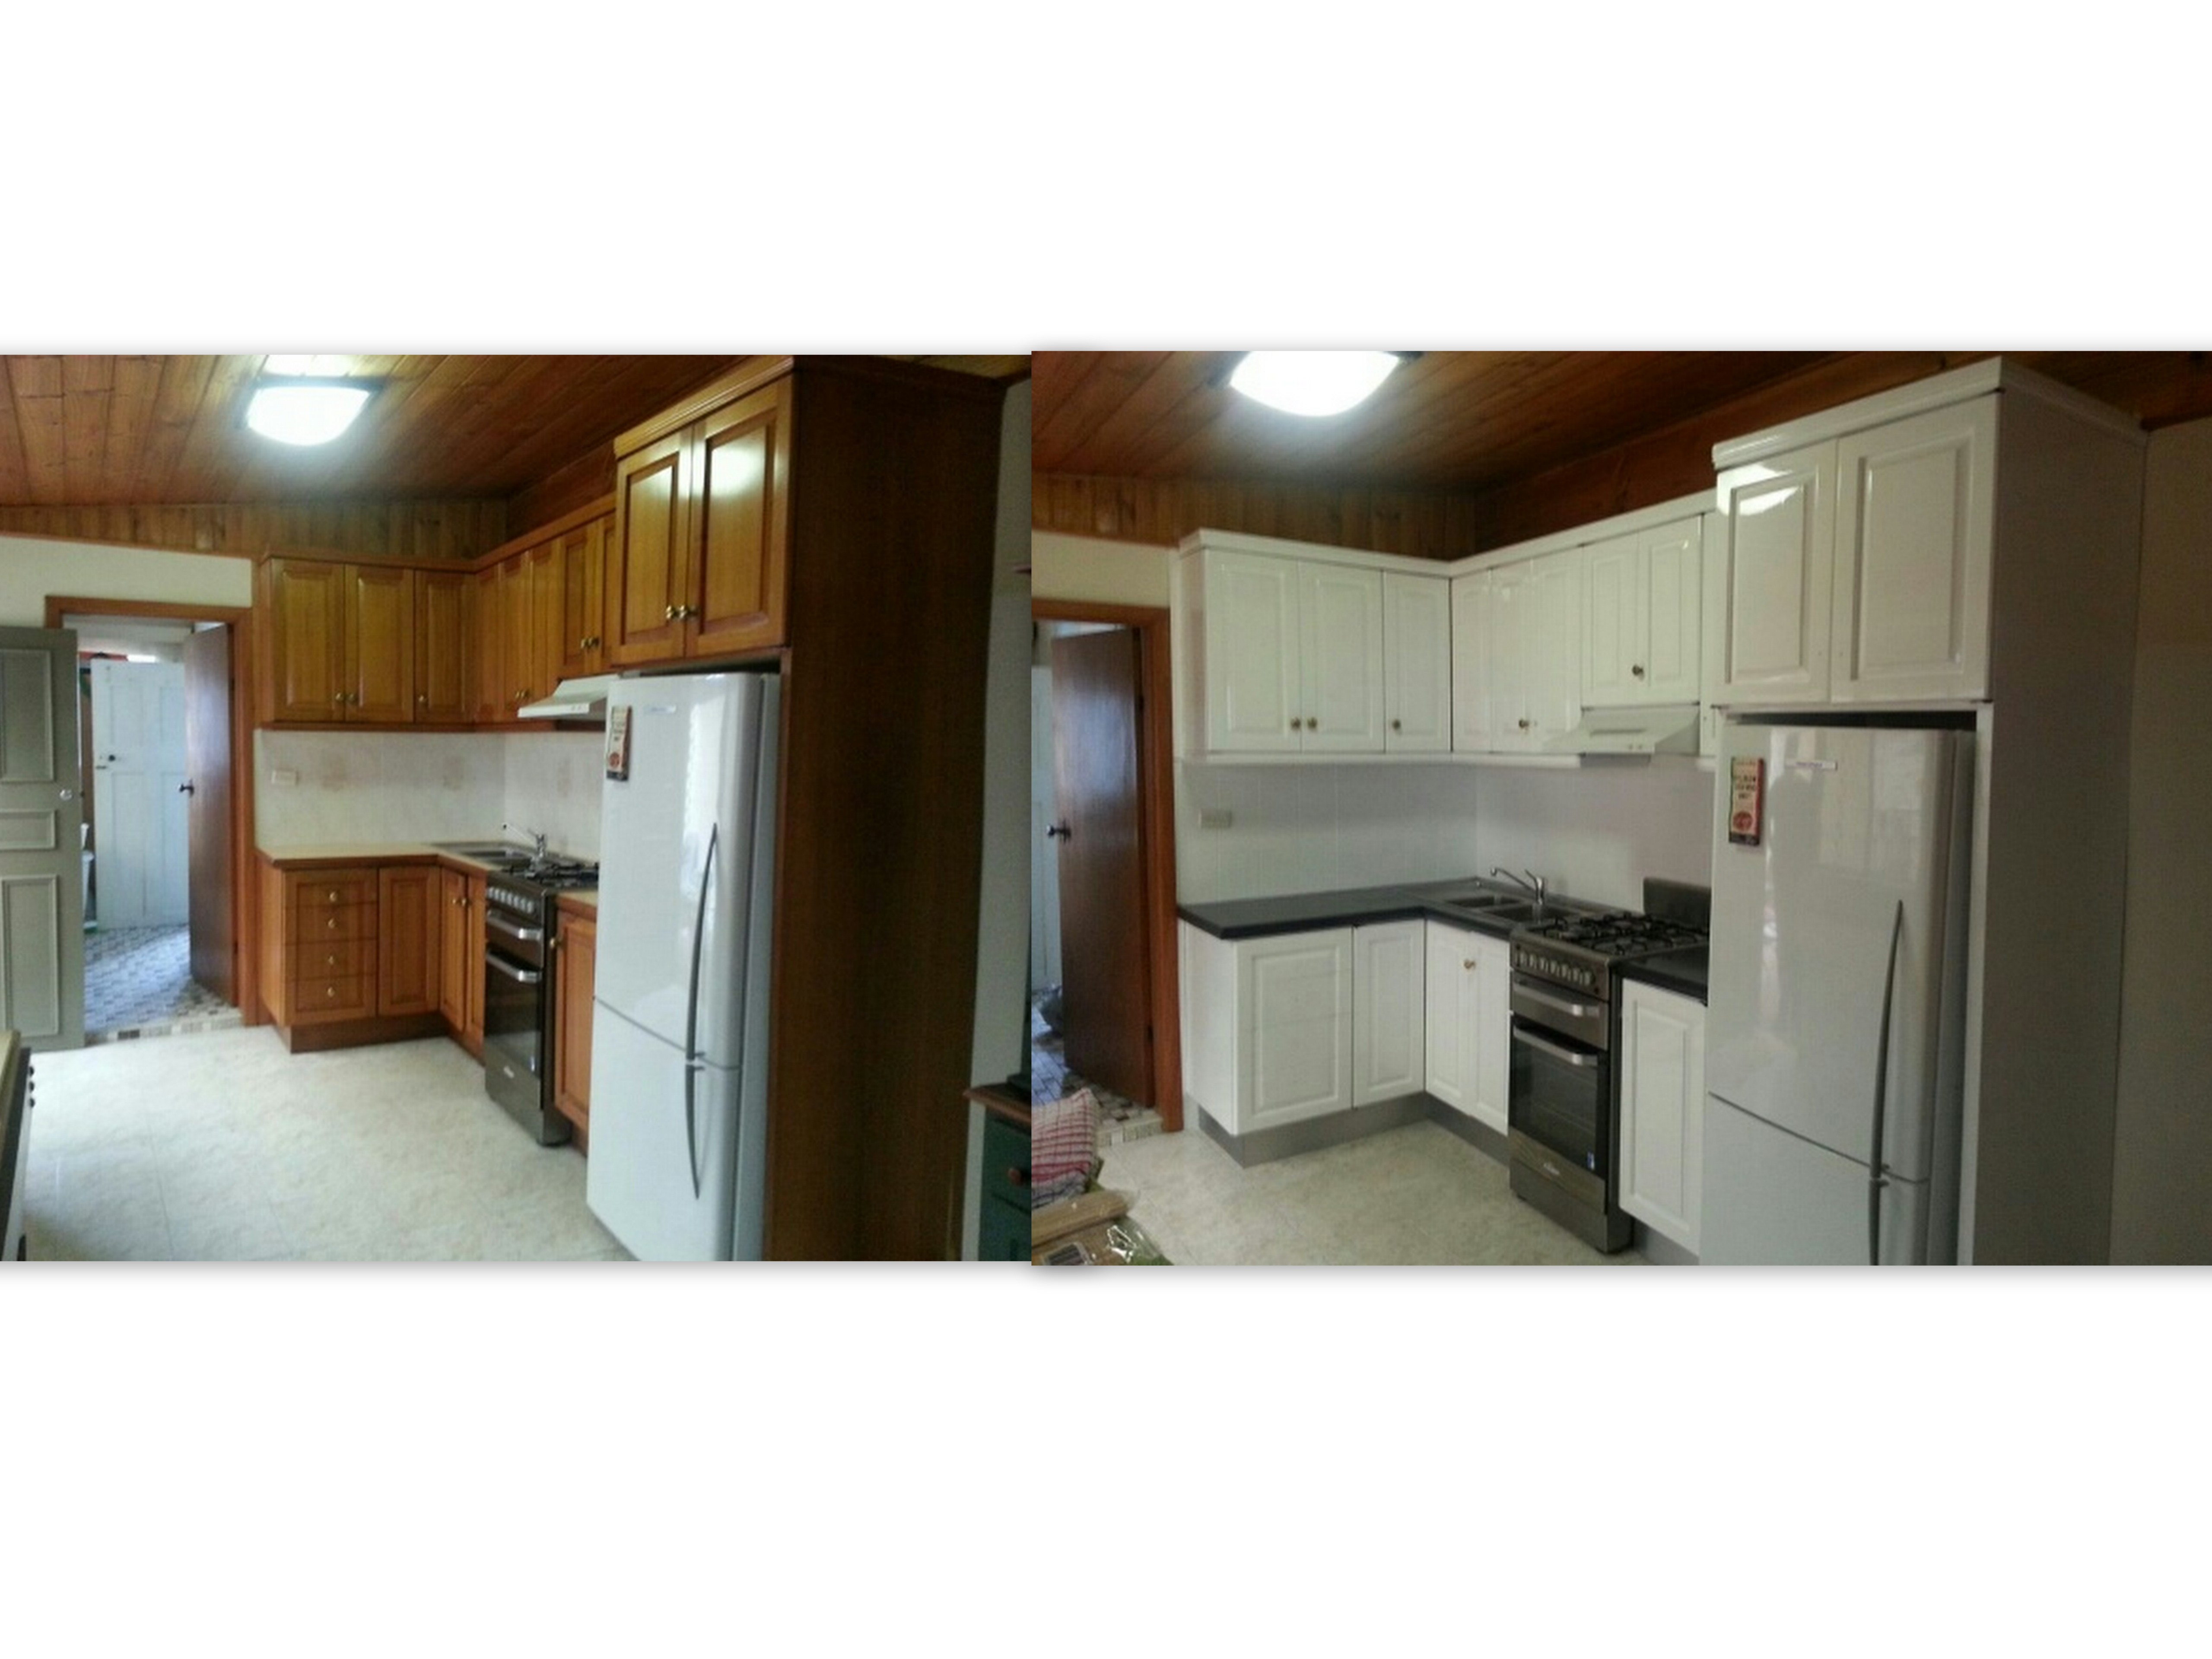 kitchen resurfacing appliances package deals cabinets sydney all class acr kitchen8 0043 0155